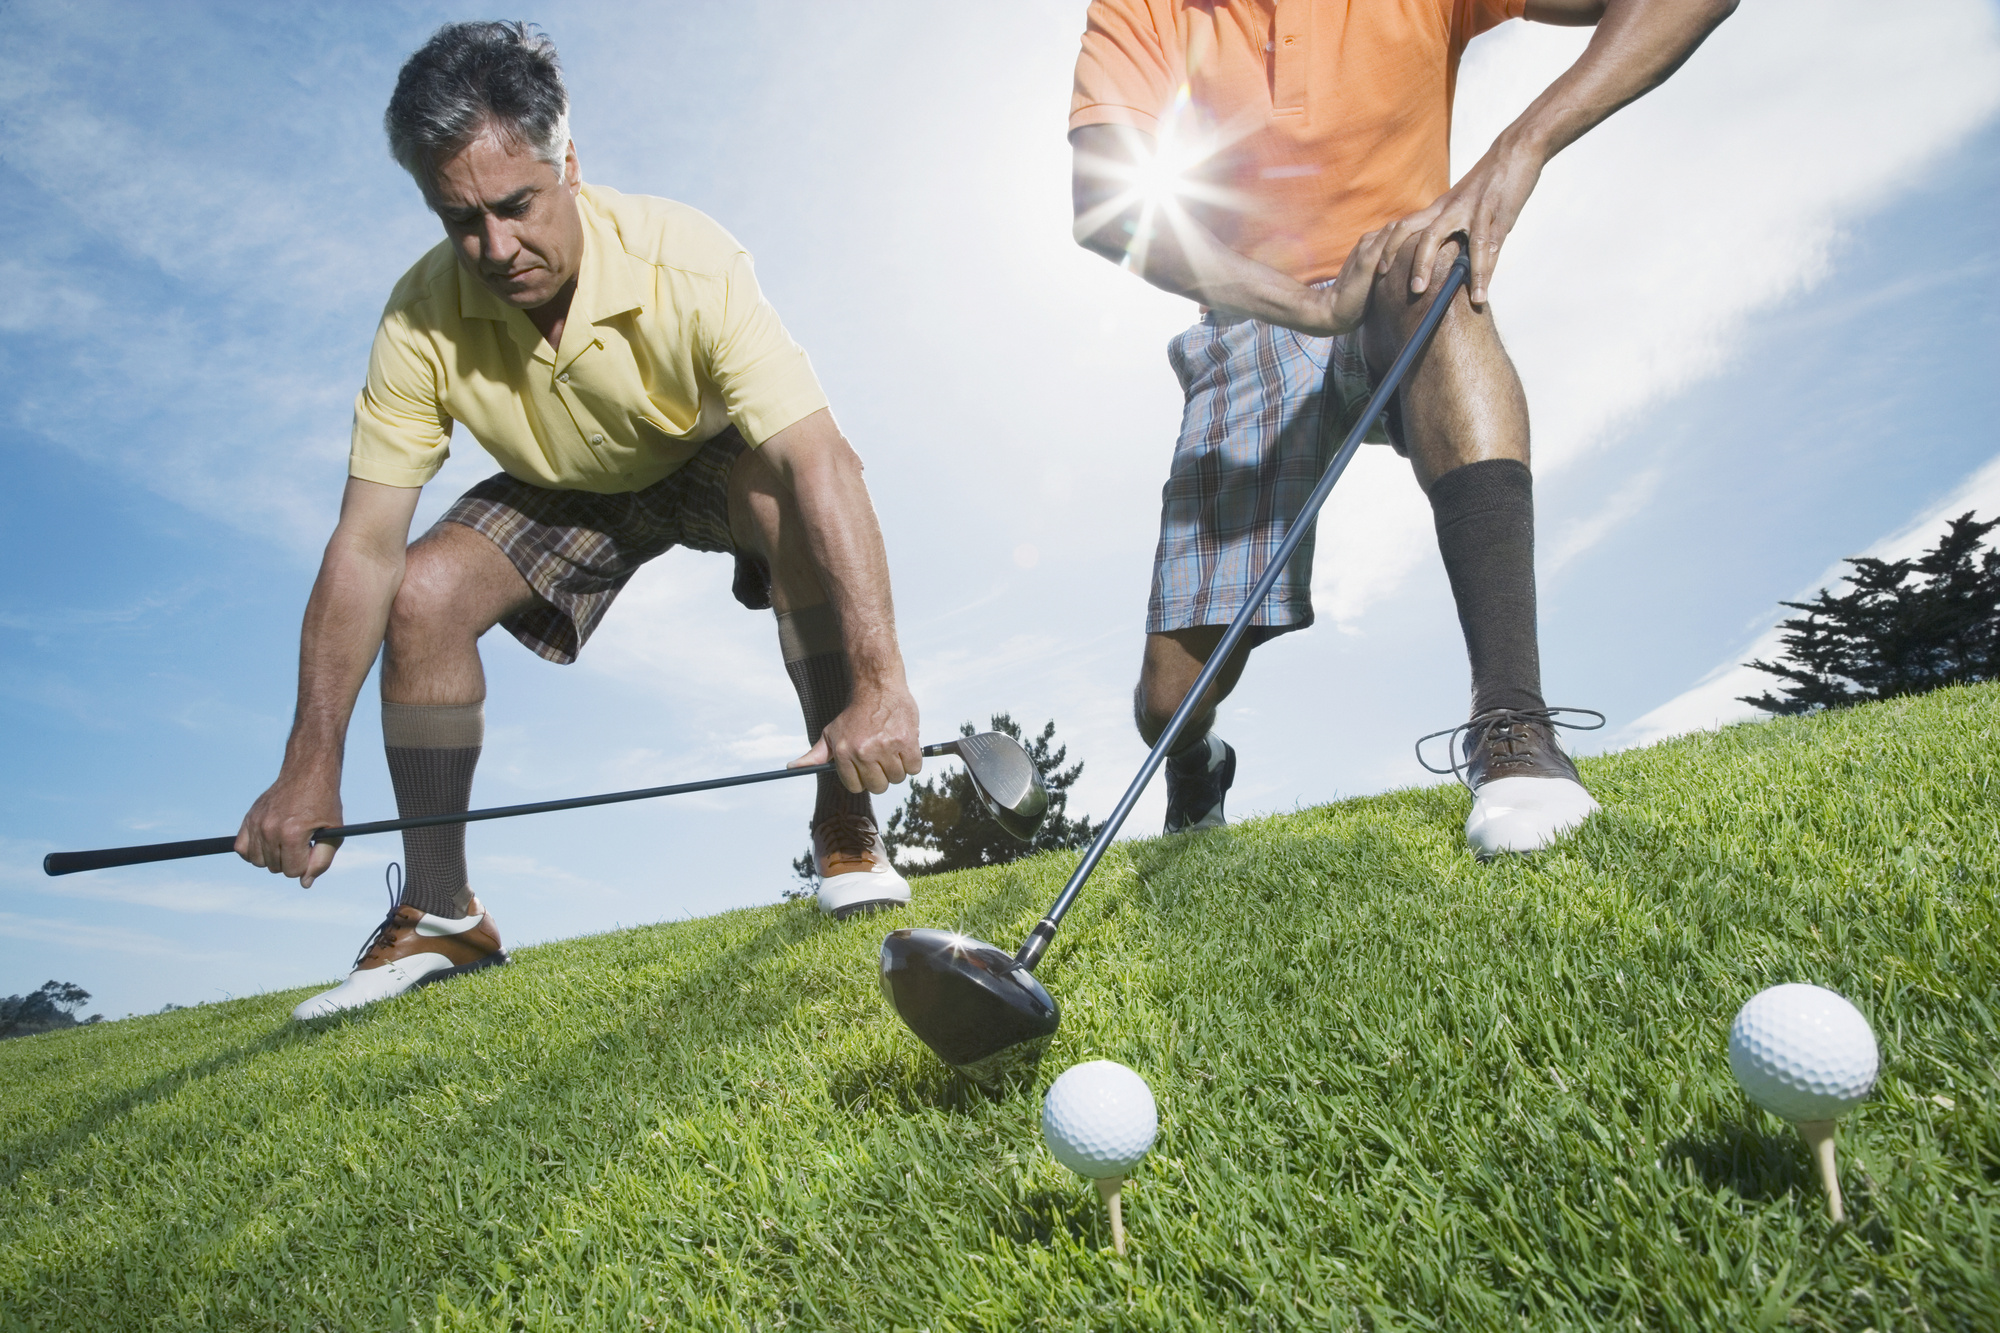 Is Your Body Hurting Your Golf Game: Get Ready For 18-Holes With These Pre-Game Golf Stretches